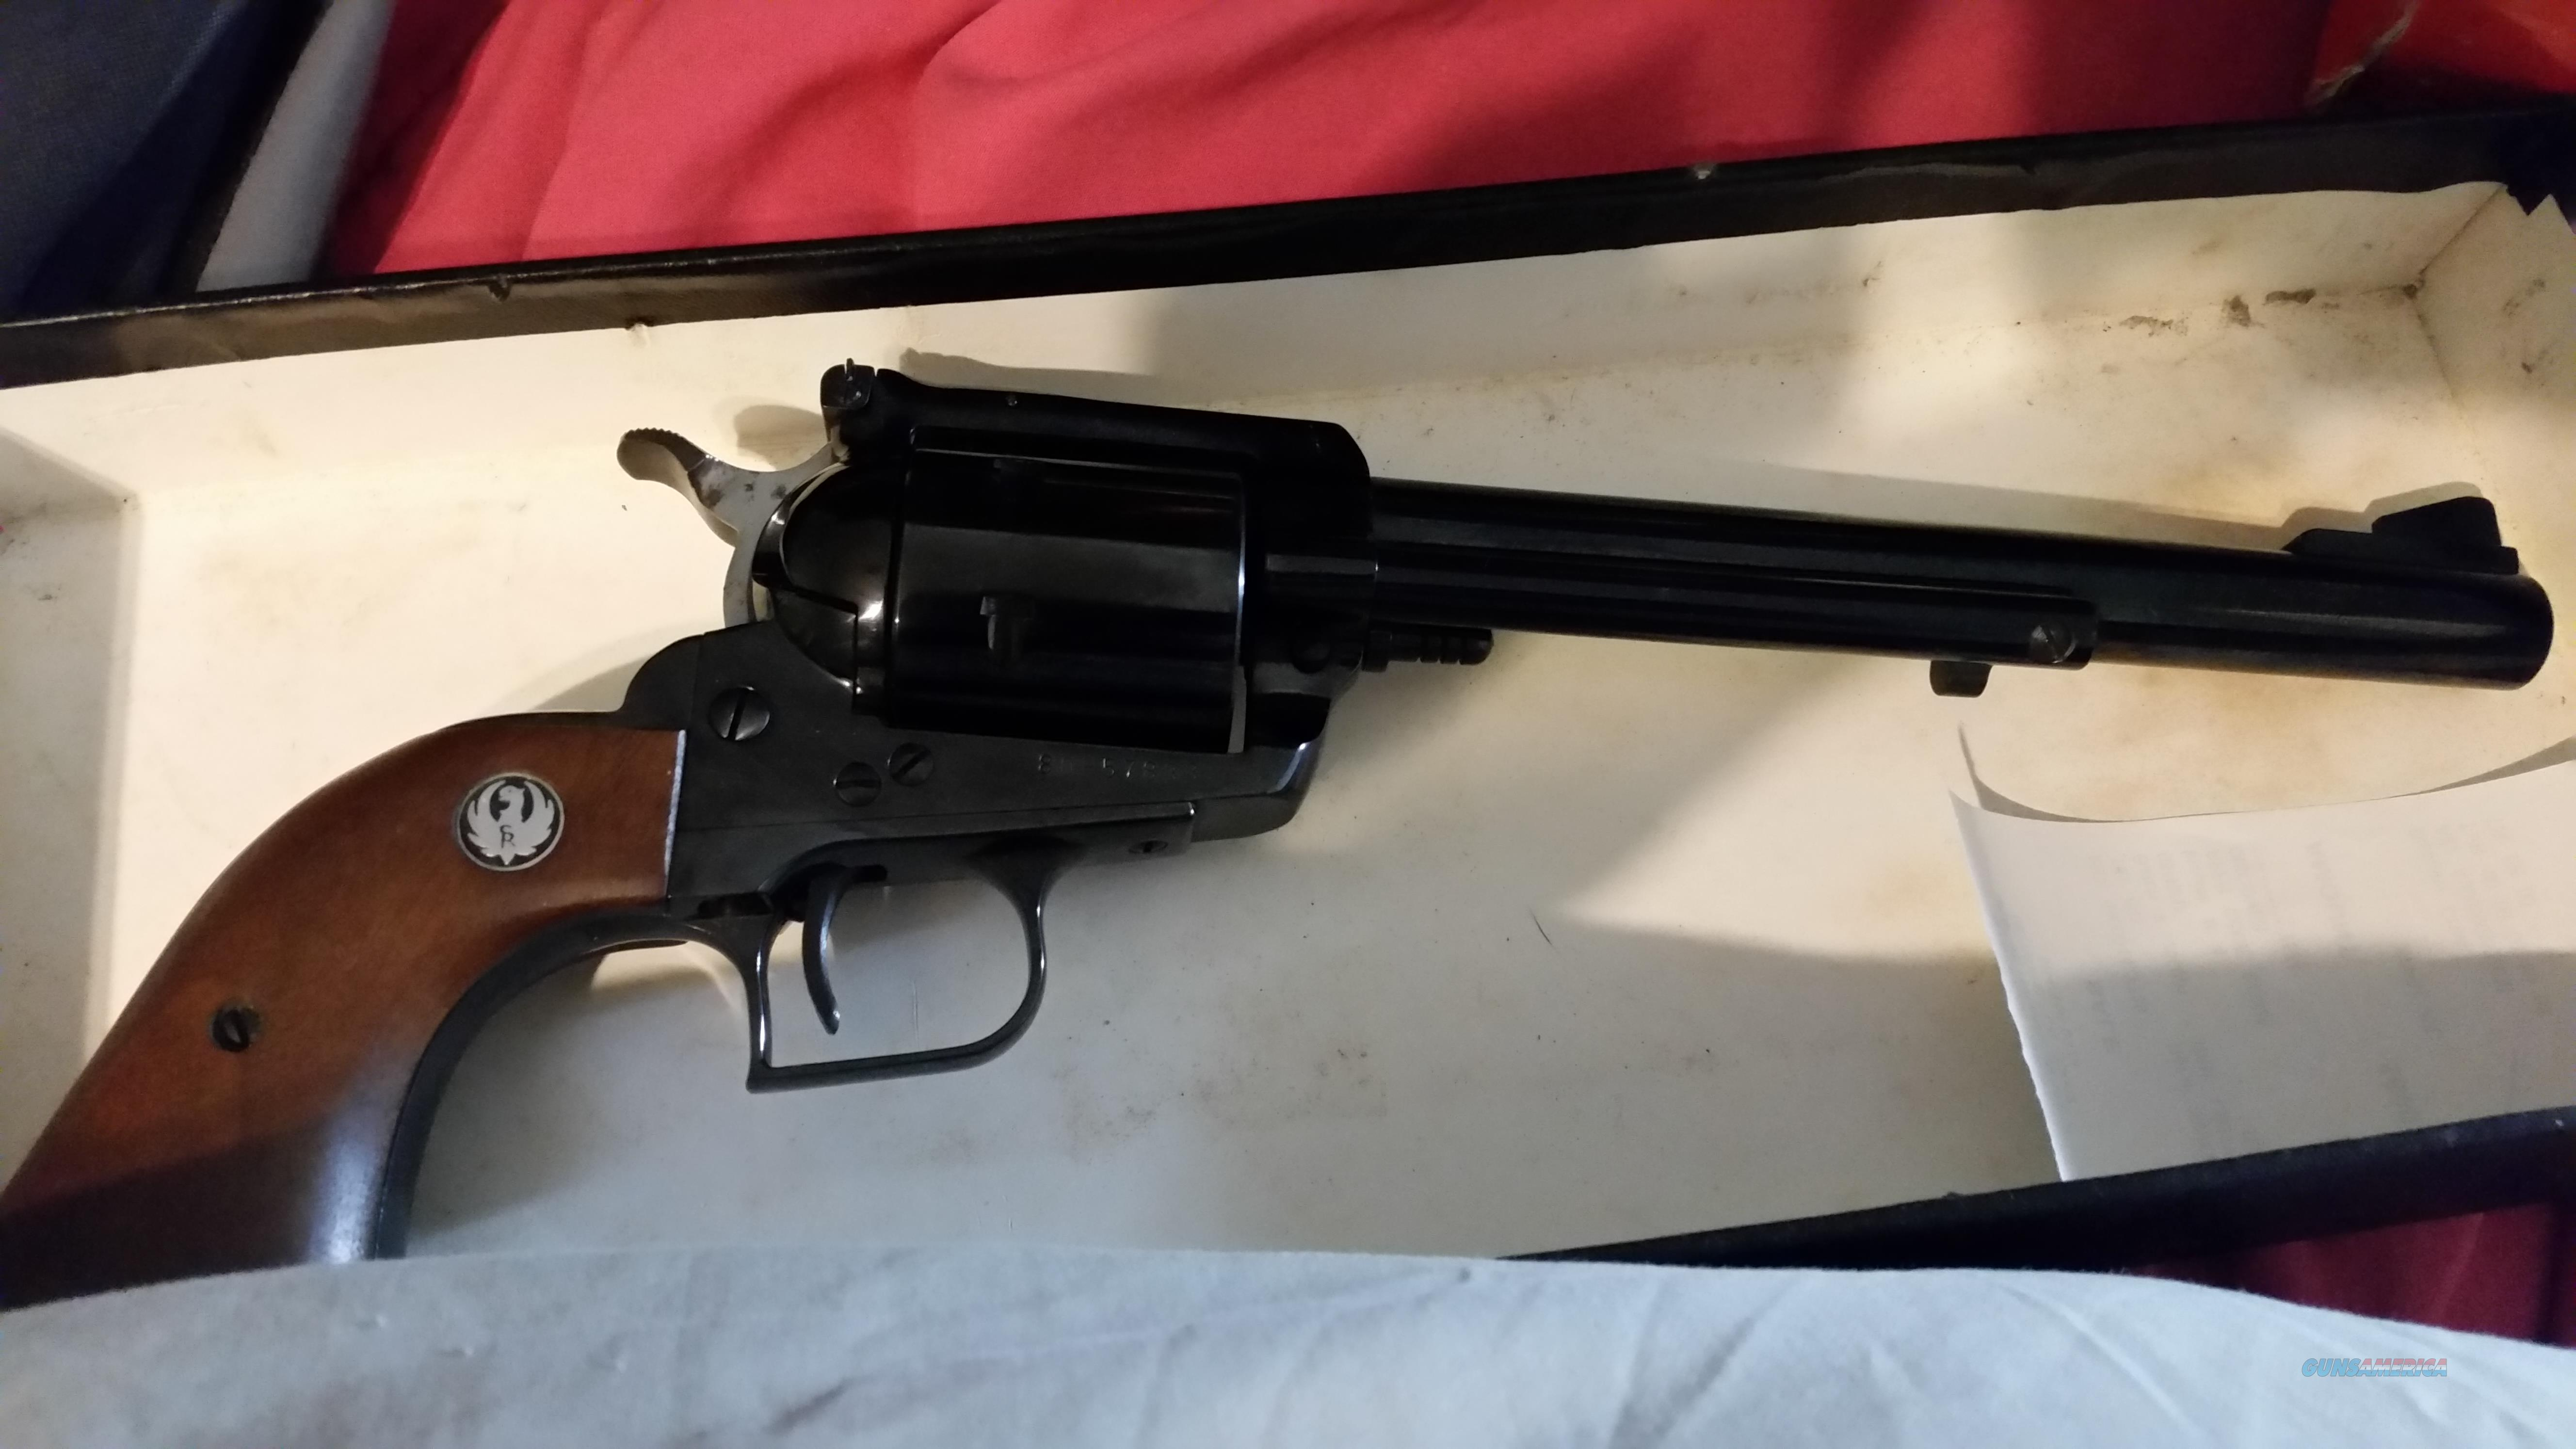 Ruger Old Model Super Blackhawk 44 mag. Unfired 1973   Guns > Pistols > Ruger Single Action Revolvers > Blackhawk Type